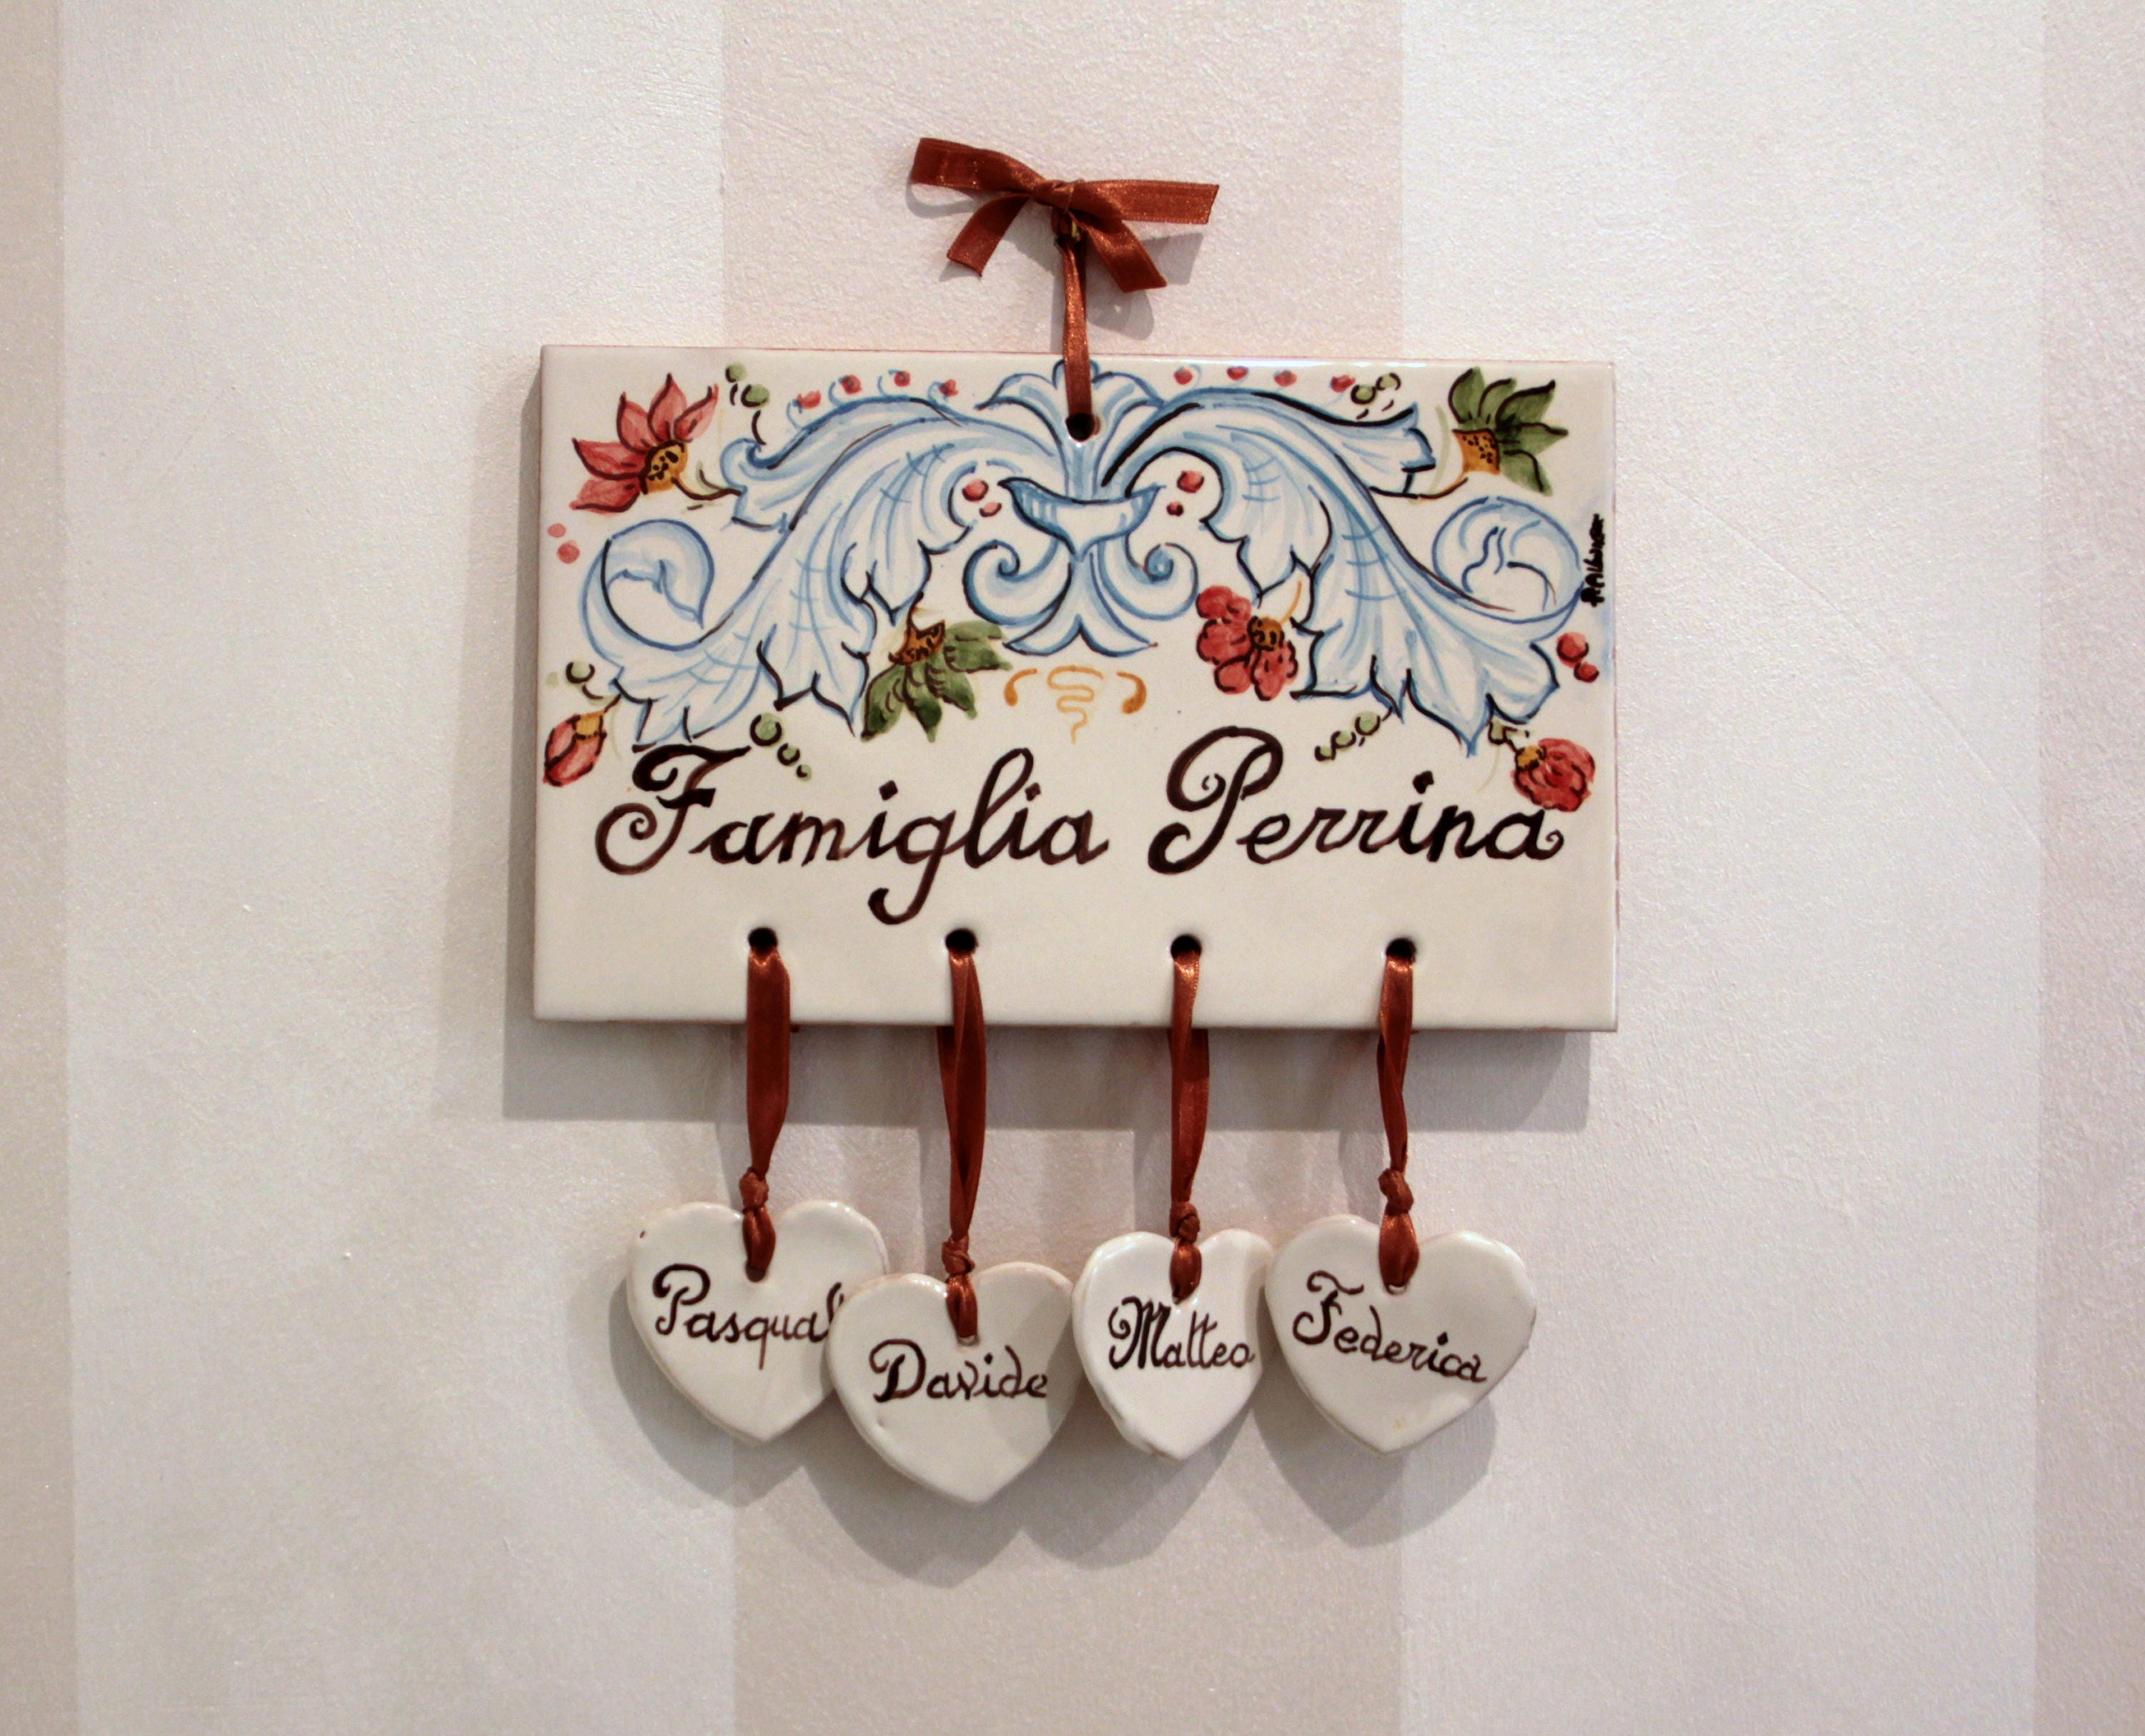 Custom names signs address plaque home number plaques family name custom names signs address plaque home number plaques family name sign personalized plaques to hang ceramic italy tiles family plaque dailygadgetfo Images